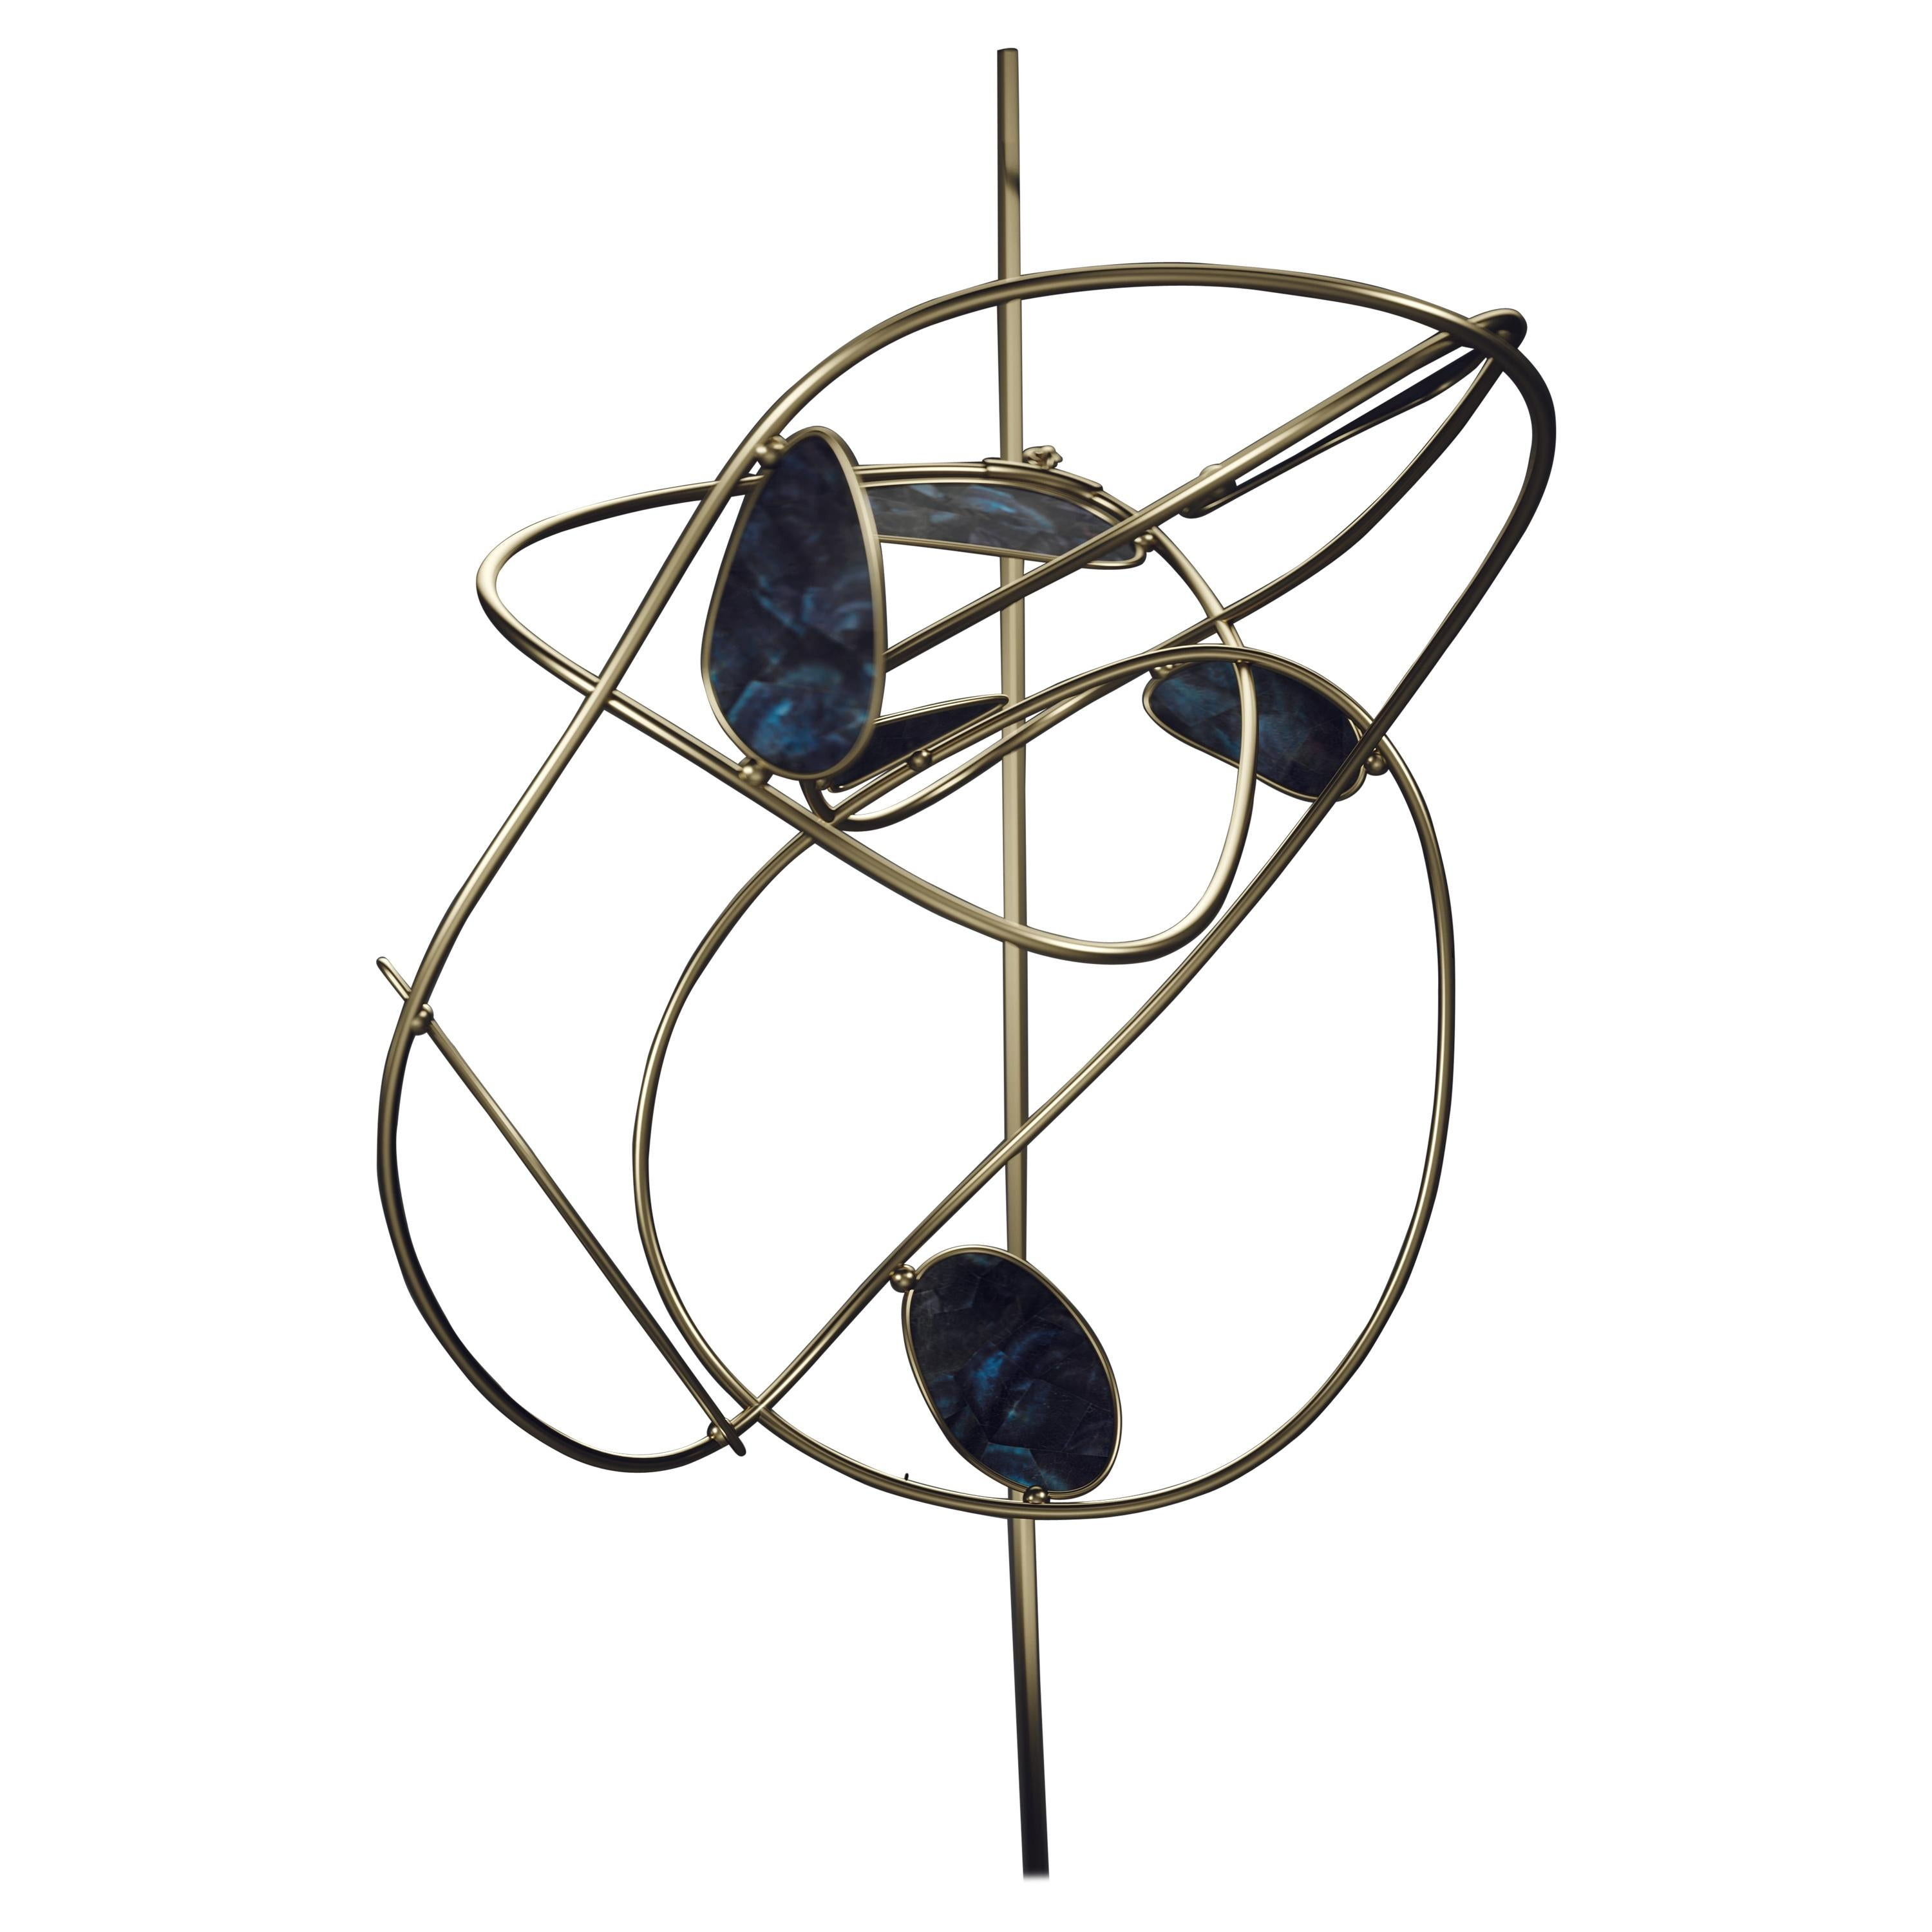 Mobile in Bronze-Patina Brass and Shell by Kifu Paris